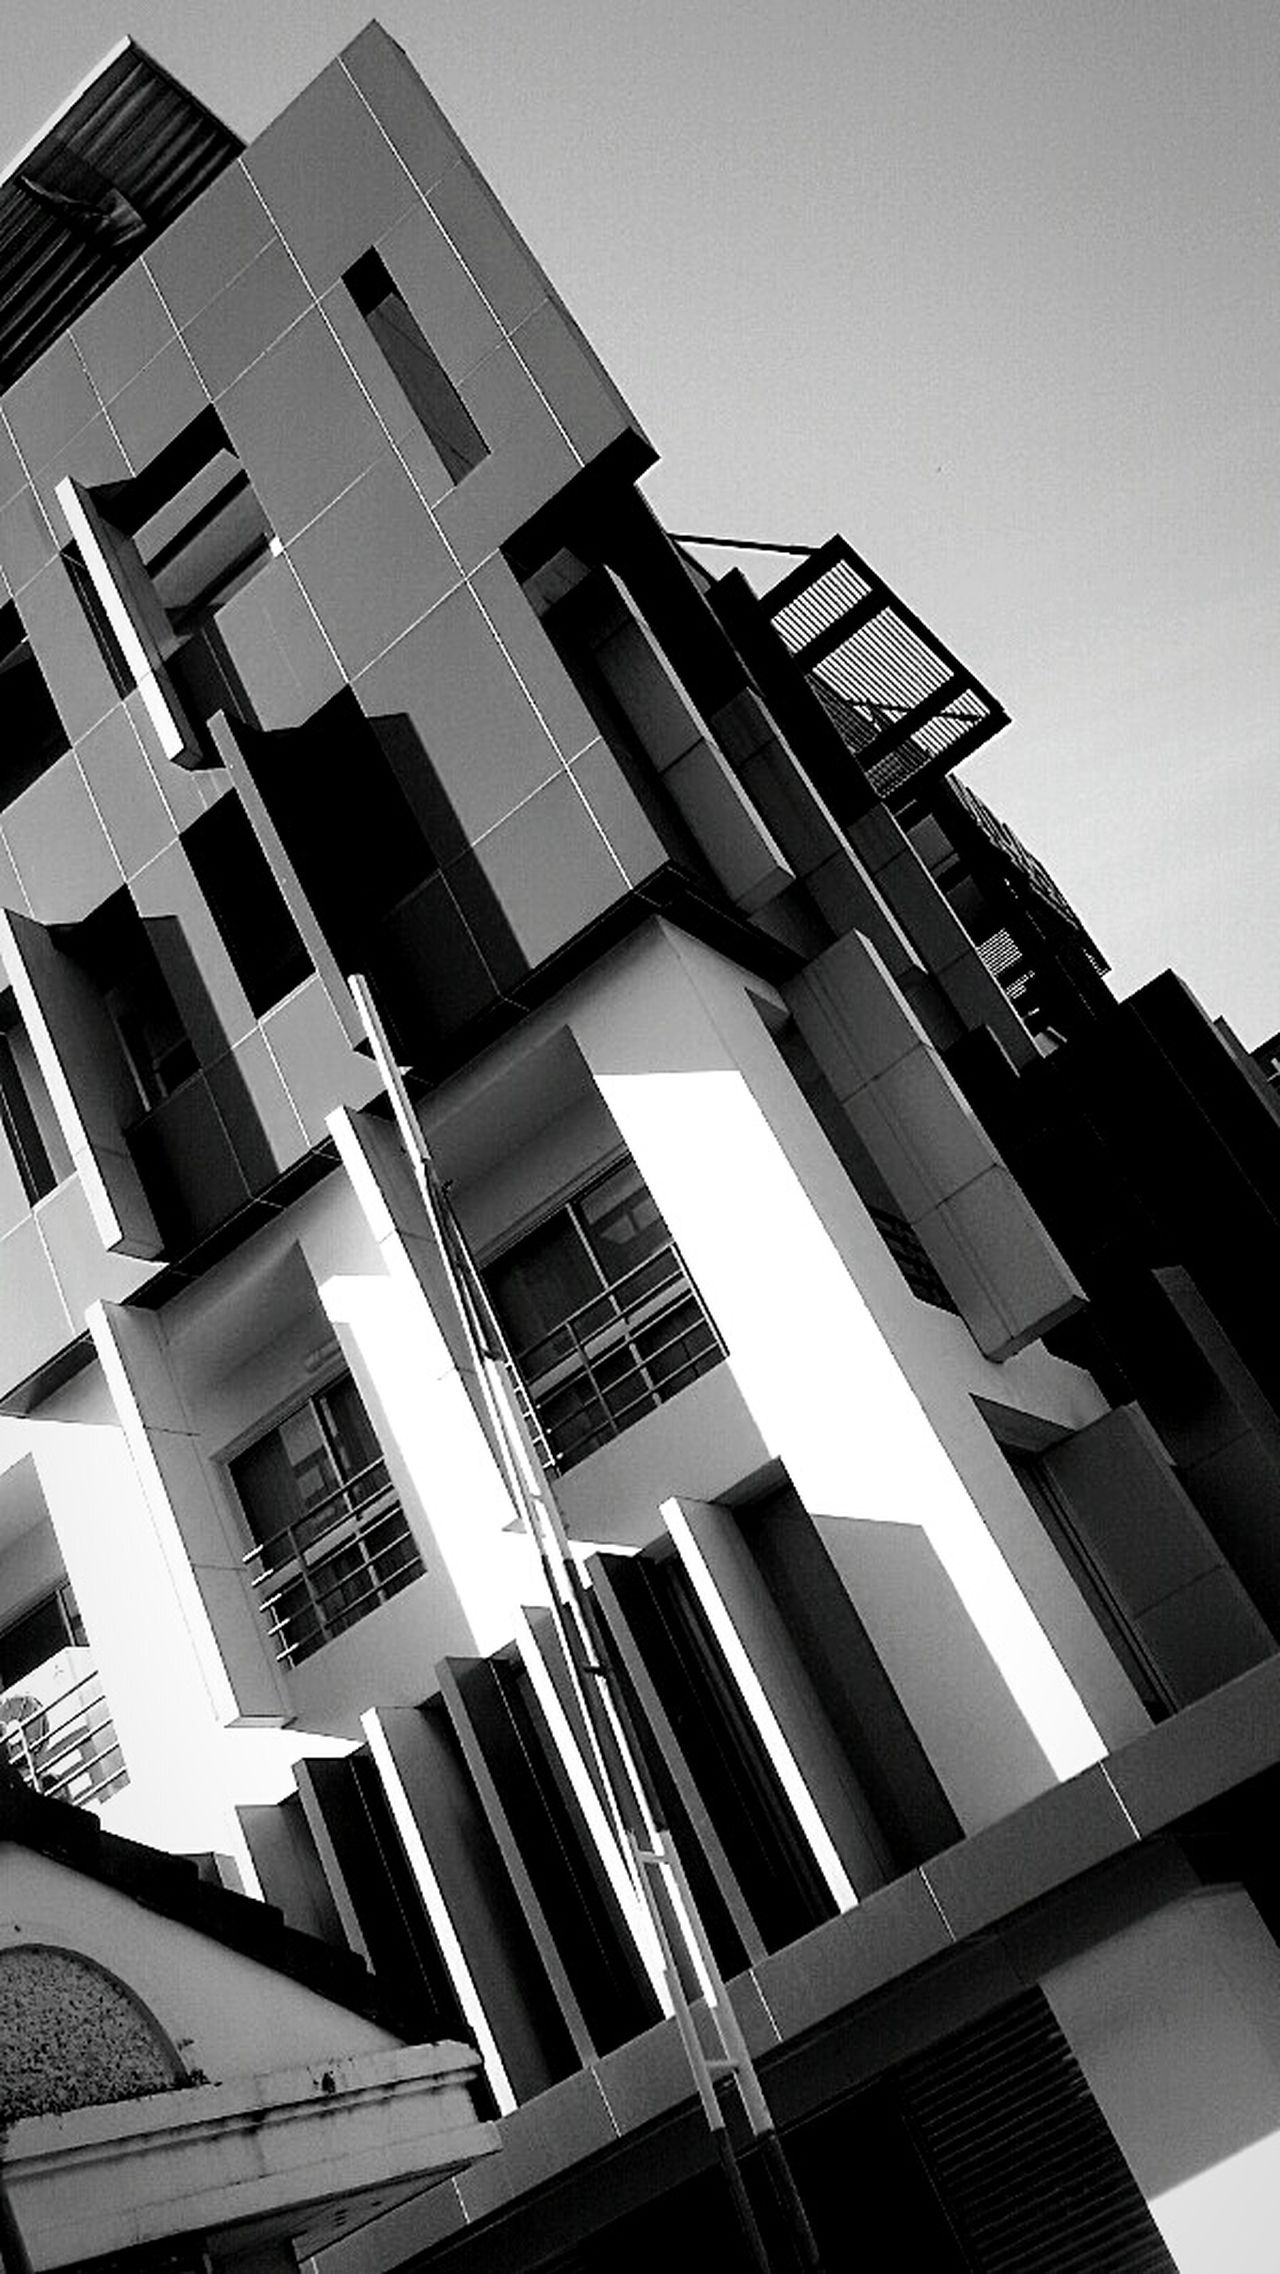 Modern Building, Urban Design, Geometric Shapes, Black and White, Building and Sky, Non Symmetric, Getting In Spired. .